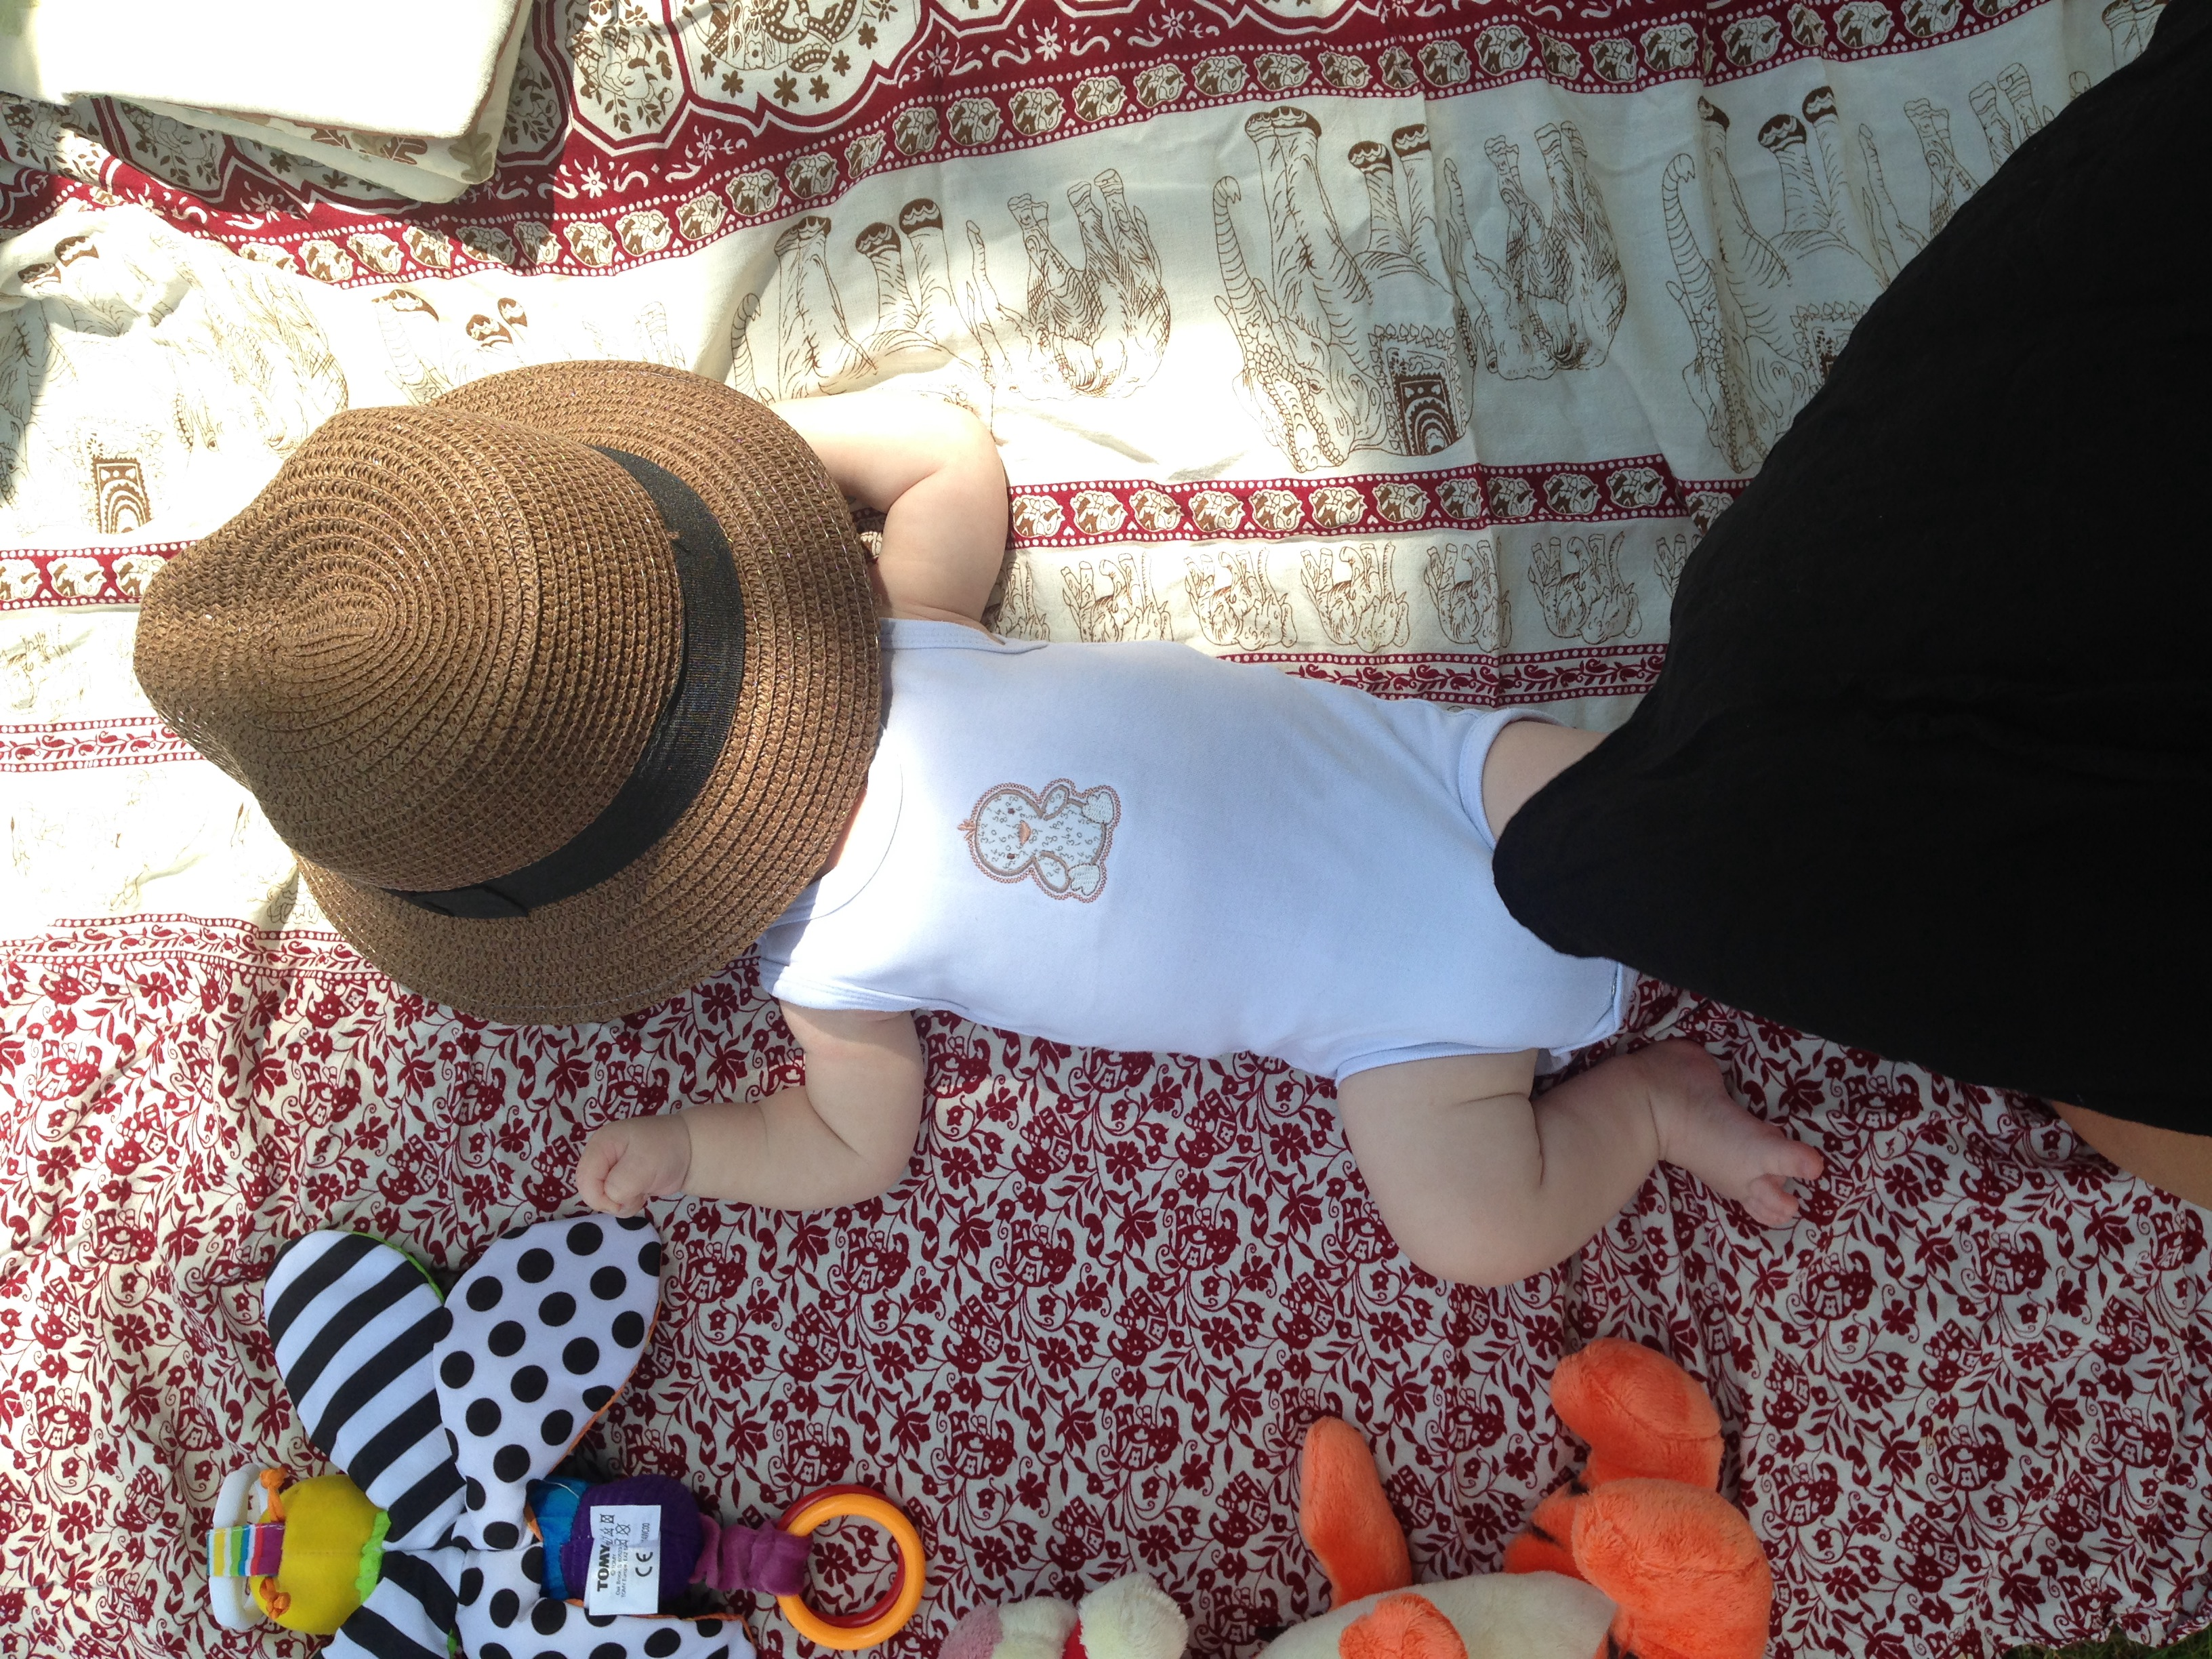 It's getting hot in hurr – keeping baby cool